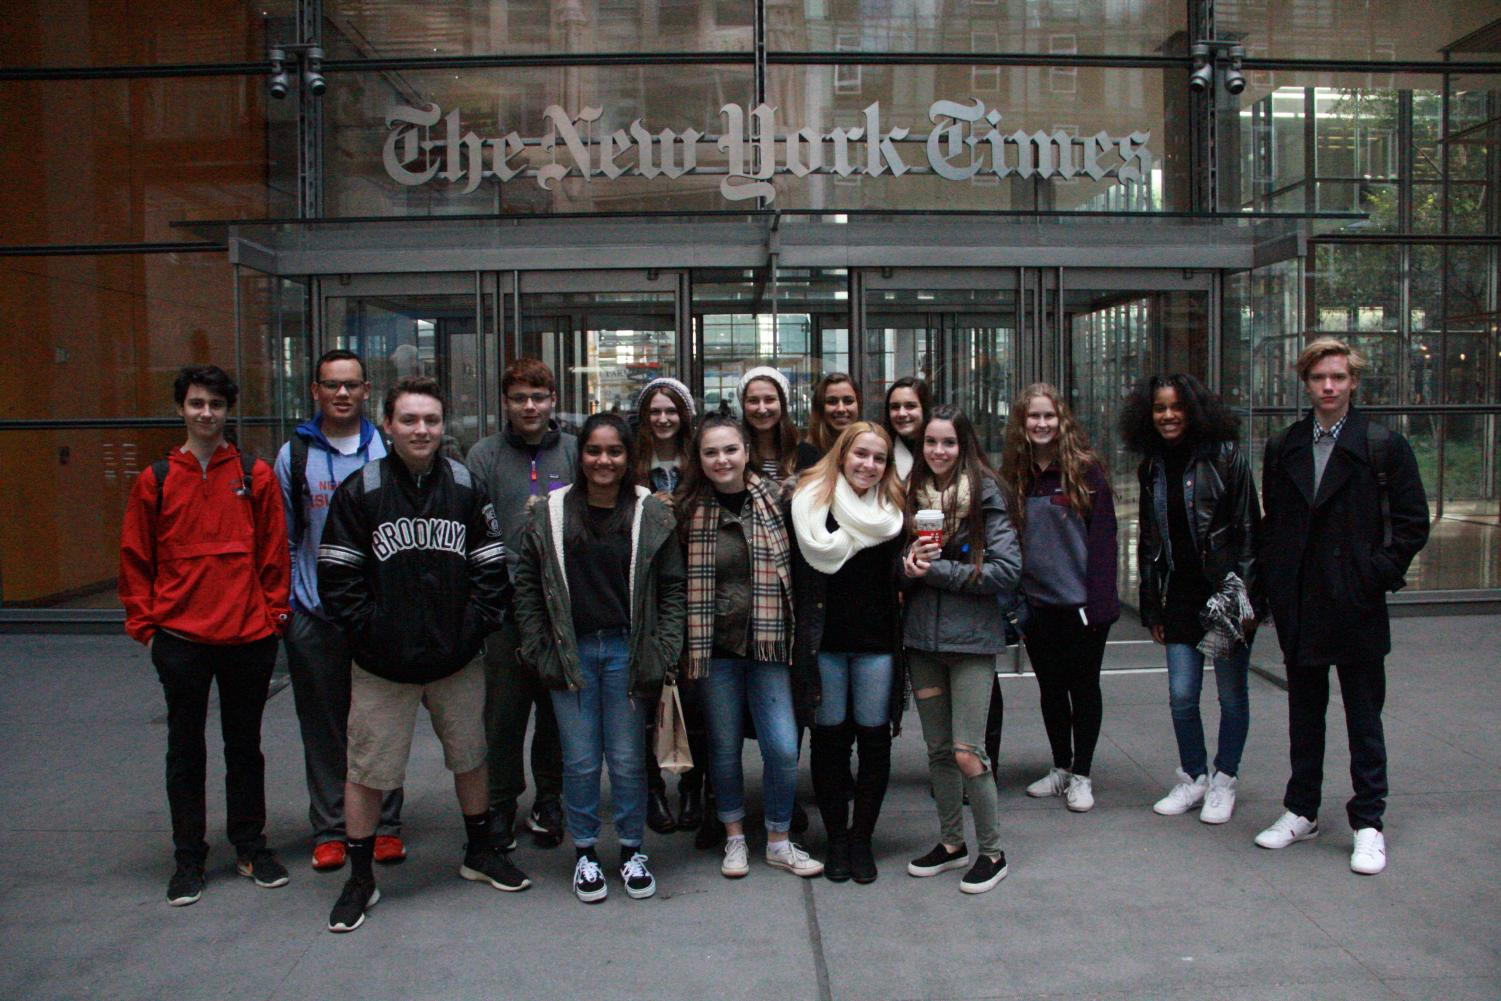 The senior staff of the Glen Echo traveled to New York City for a tour of the New York Times. They toured the offices and the morgue, and also had the opportunity to ask questions to a 29 year New York Times reporter.